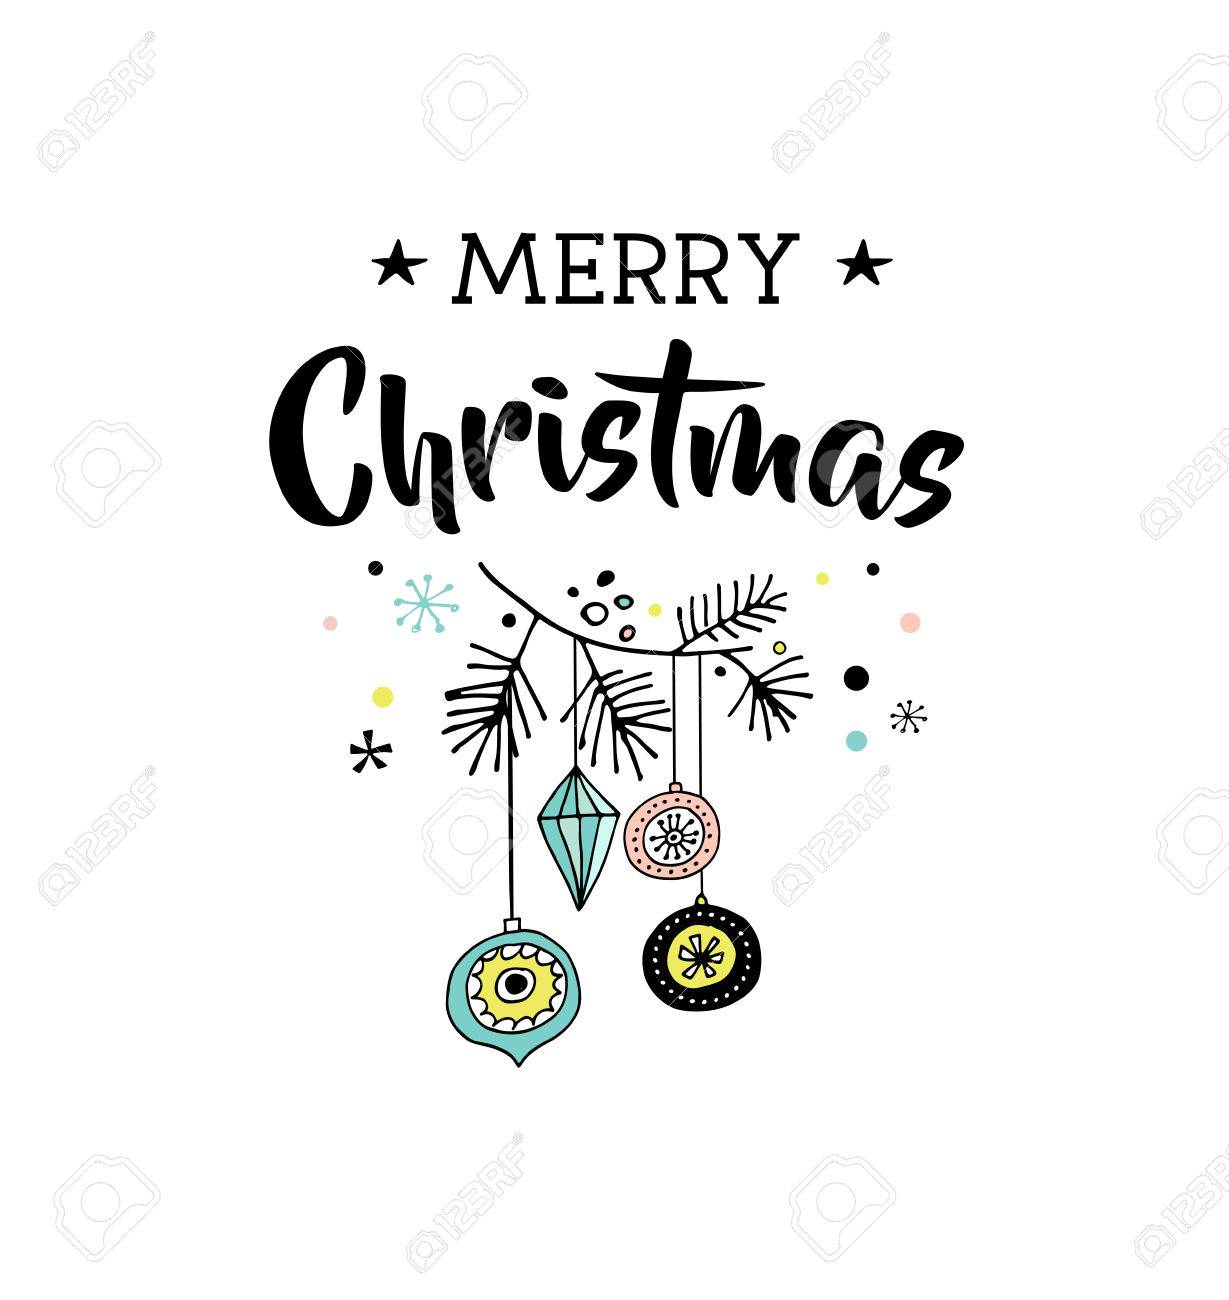 Merry Christmas Hand Drawn Cute Doodle Illustration And Greeting